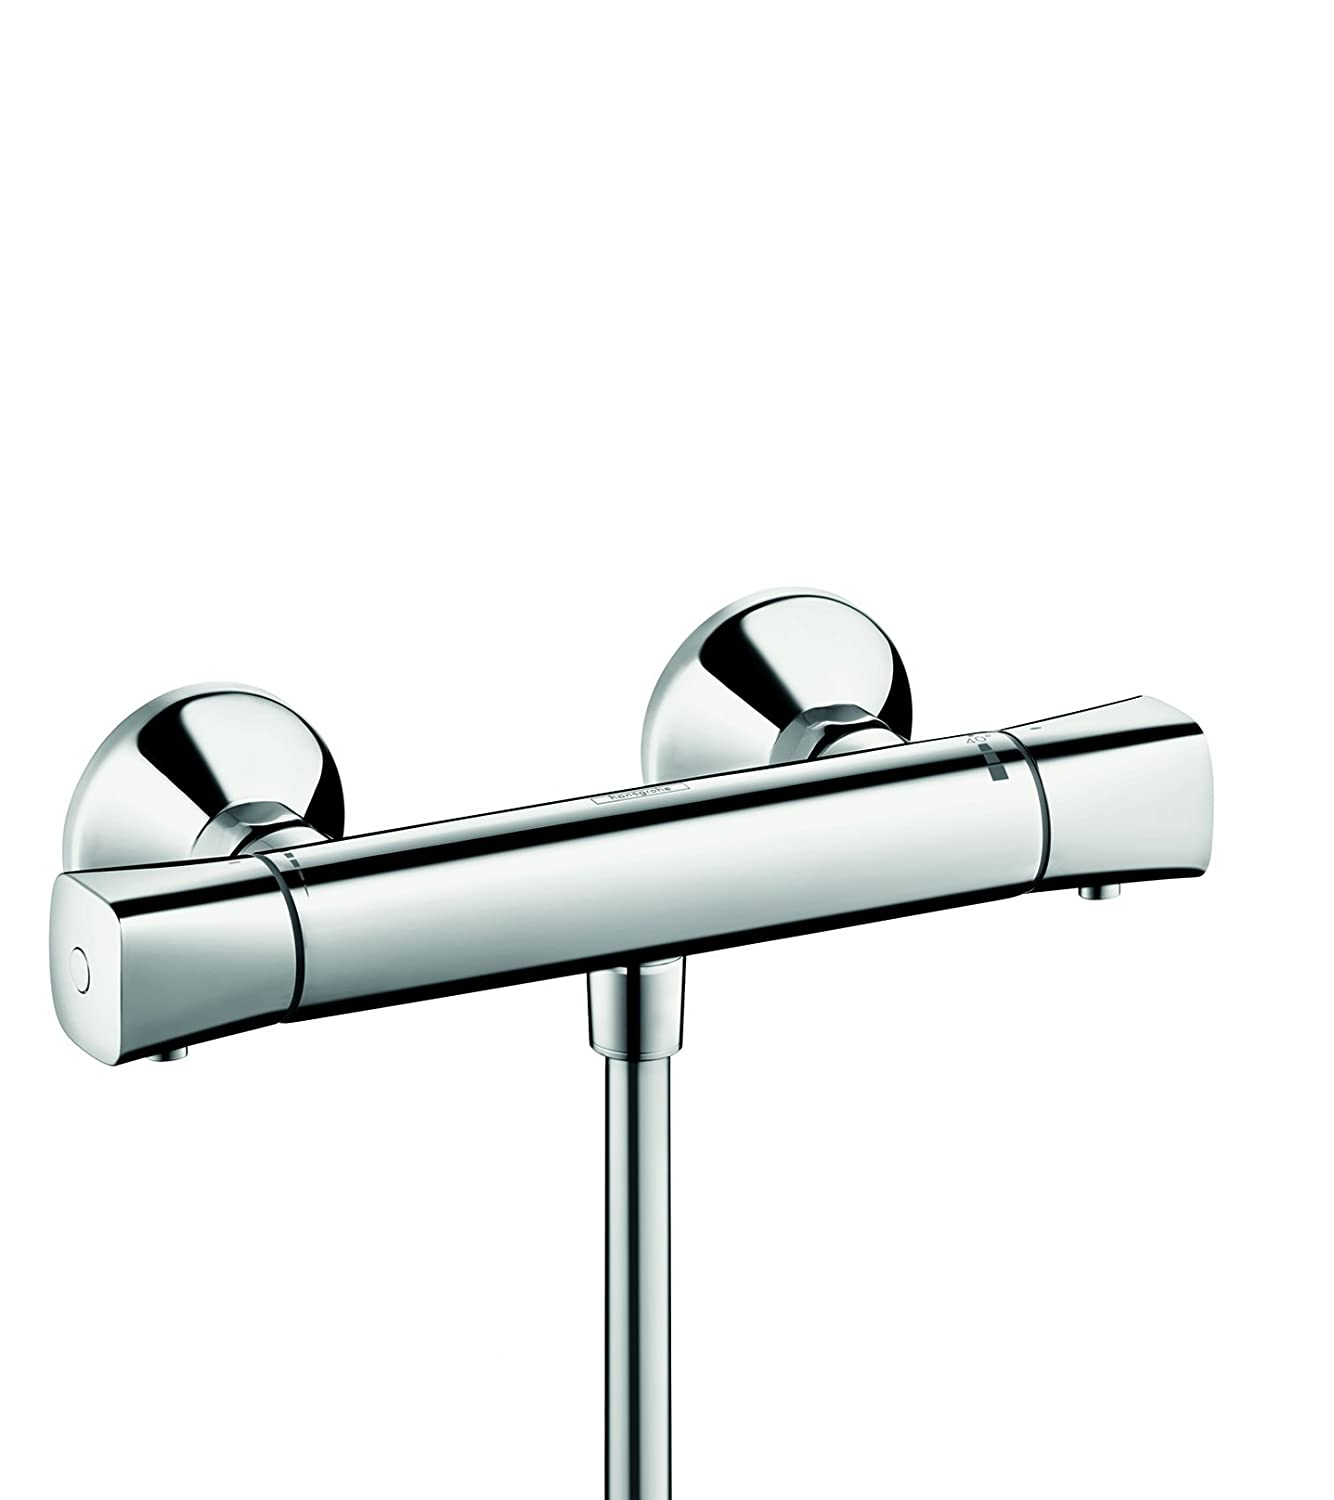 hansgrohe Ecostat Universal thermostatic bath and shower mixer, chrome 13123000